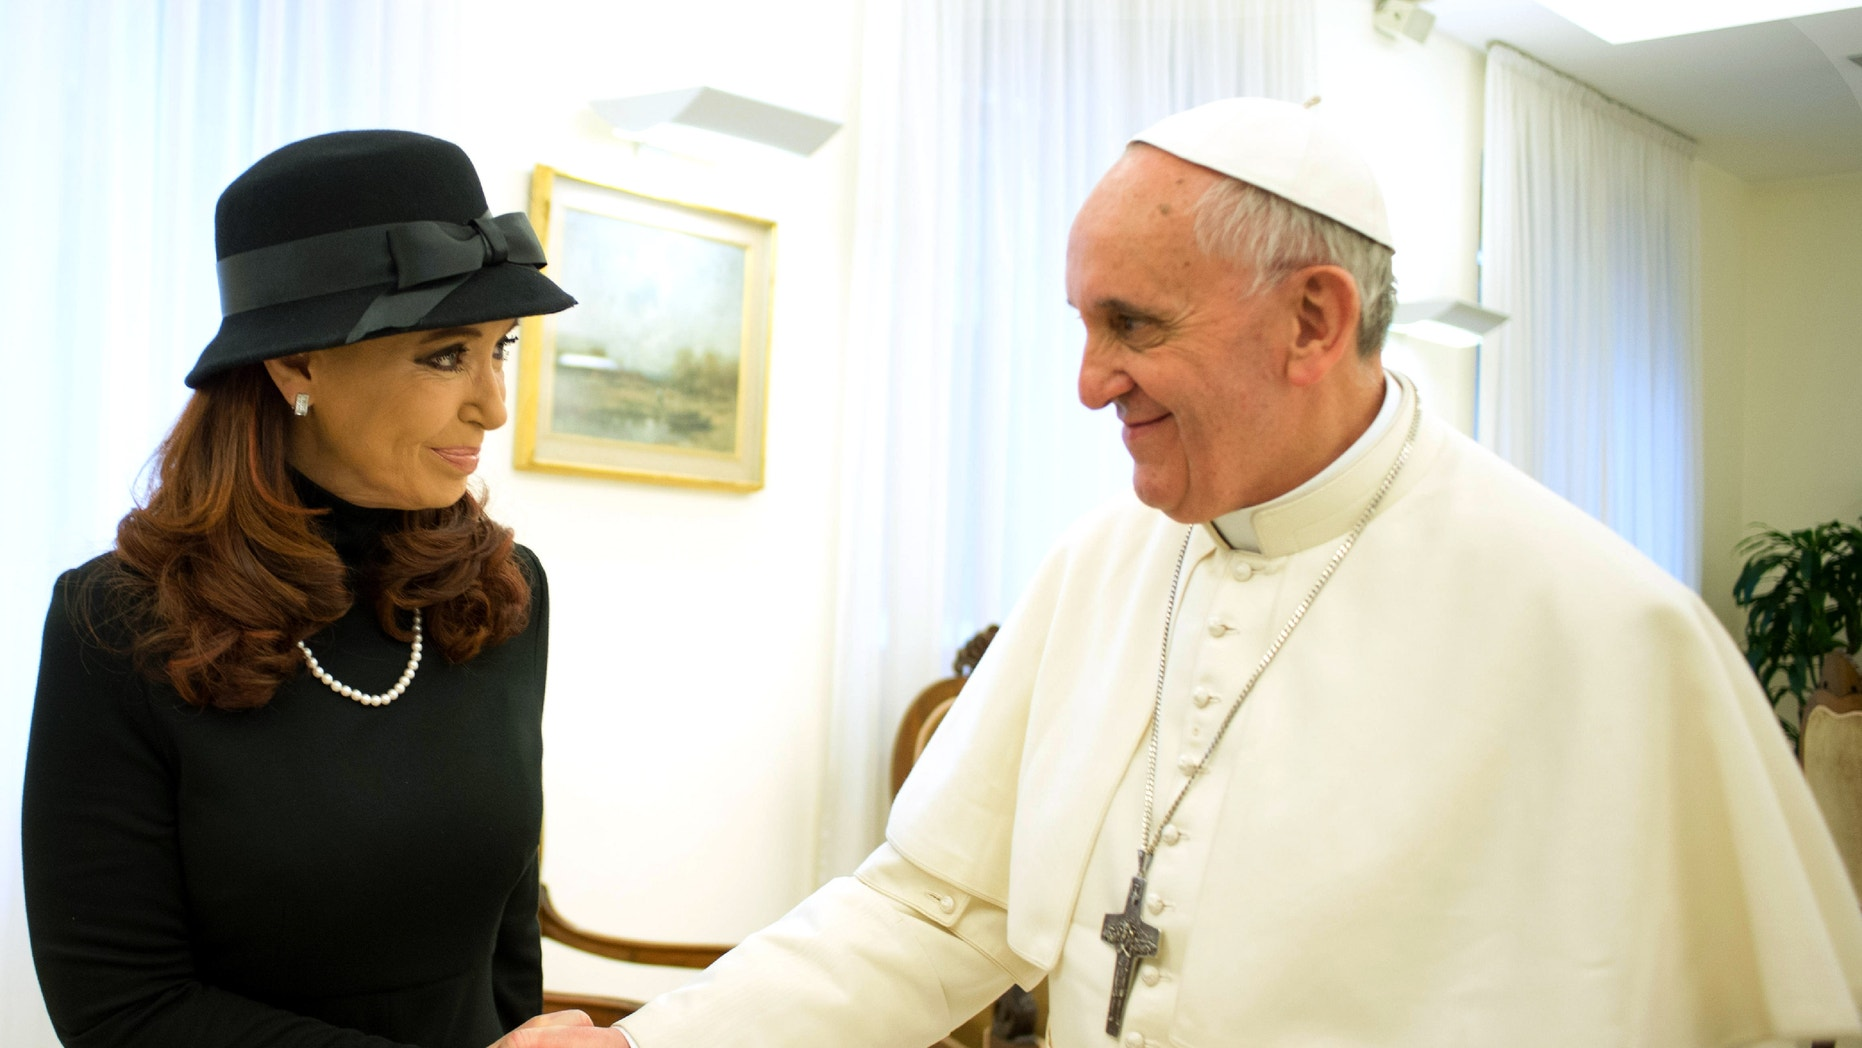 March 18, 2013 - Pope Francis meets Argentine President Cristina Fernandez at the Vatican.